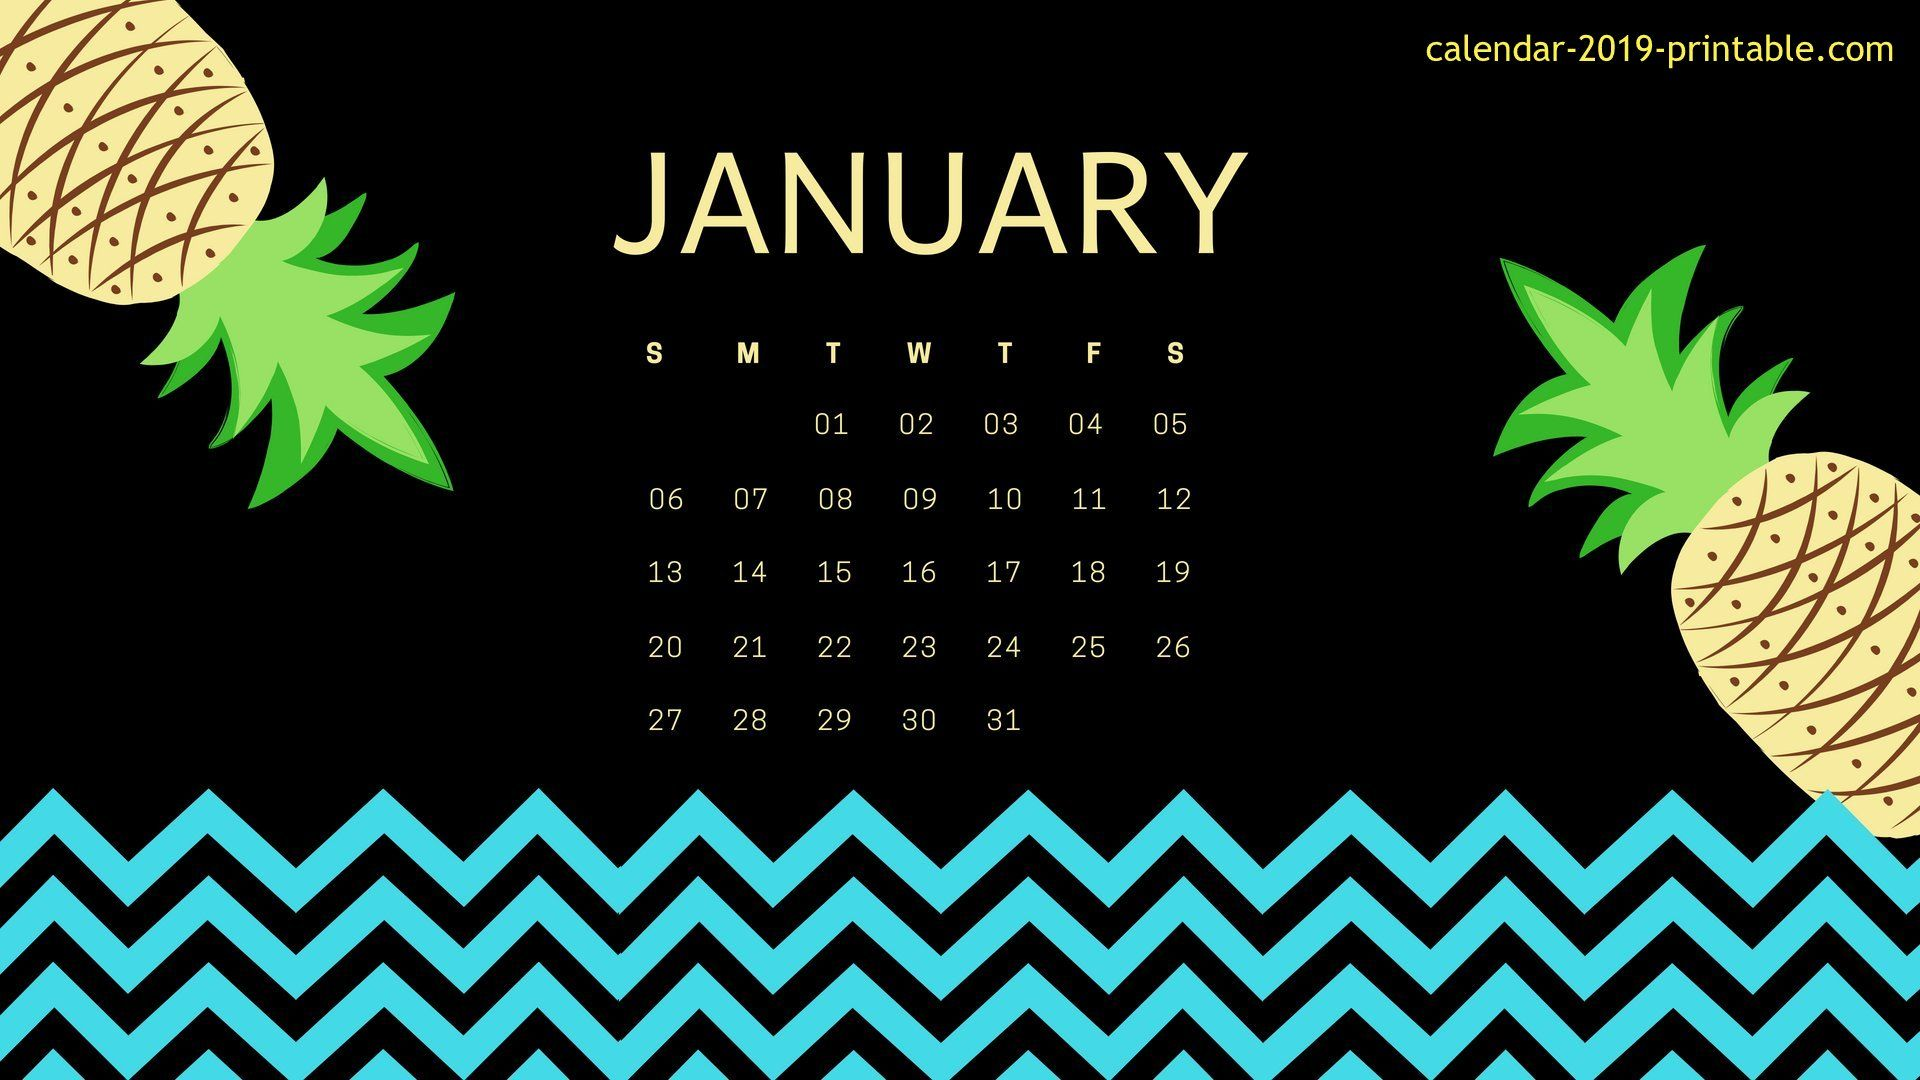 Cute January 2019 Calendar Background Wallpaper cute january 2019 calendar wallpaper | 2019 Calendars in 2019